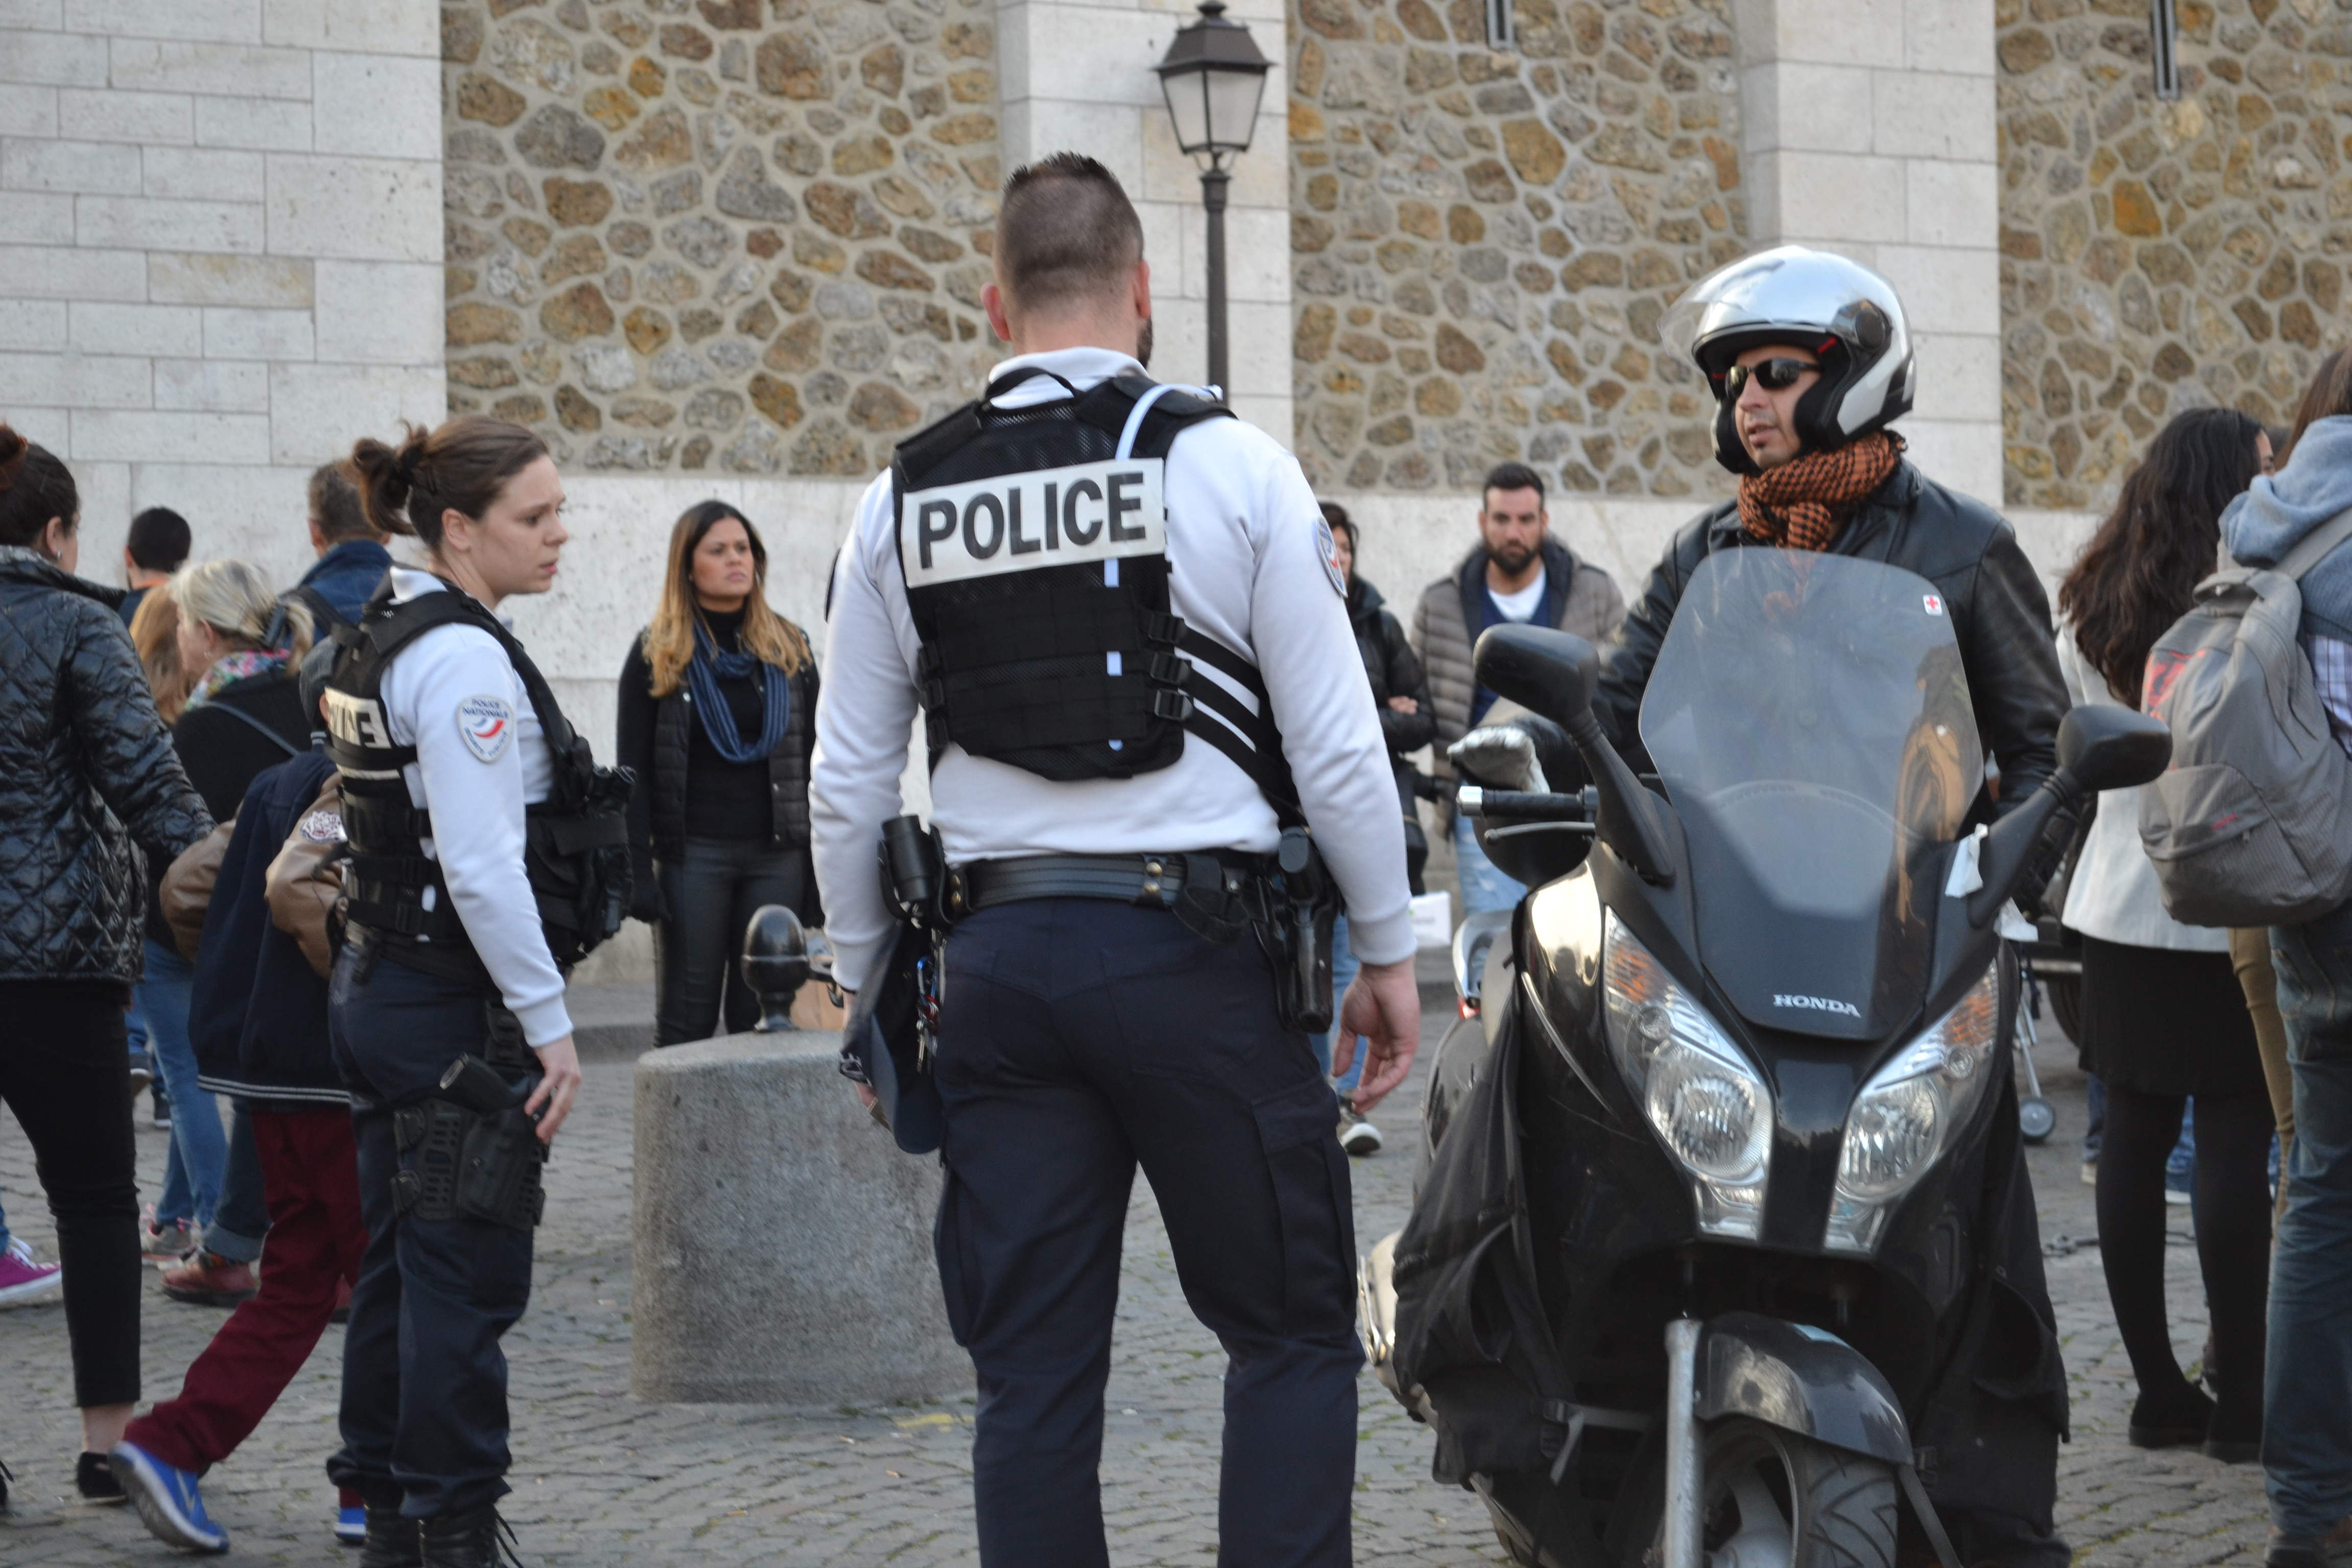 French police watchdog to investigate alleged beating of Black man